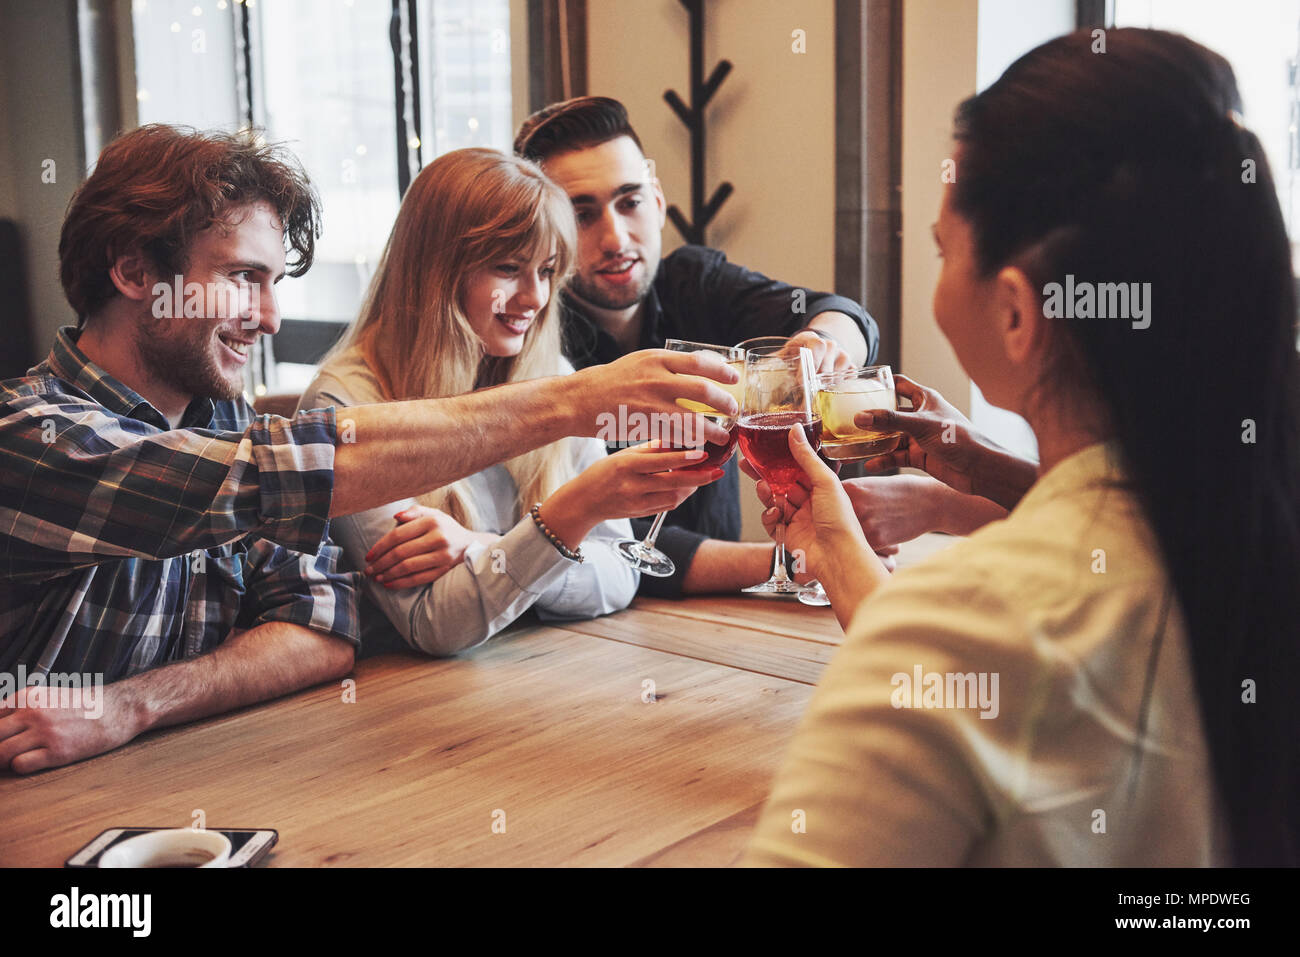 Group of young friends having fun and laughing while dining at table in restaurant Stock Photo